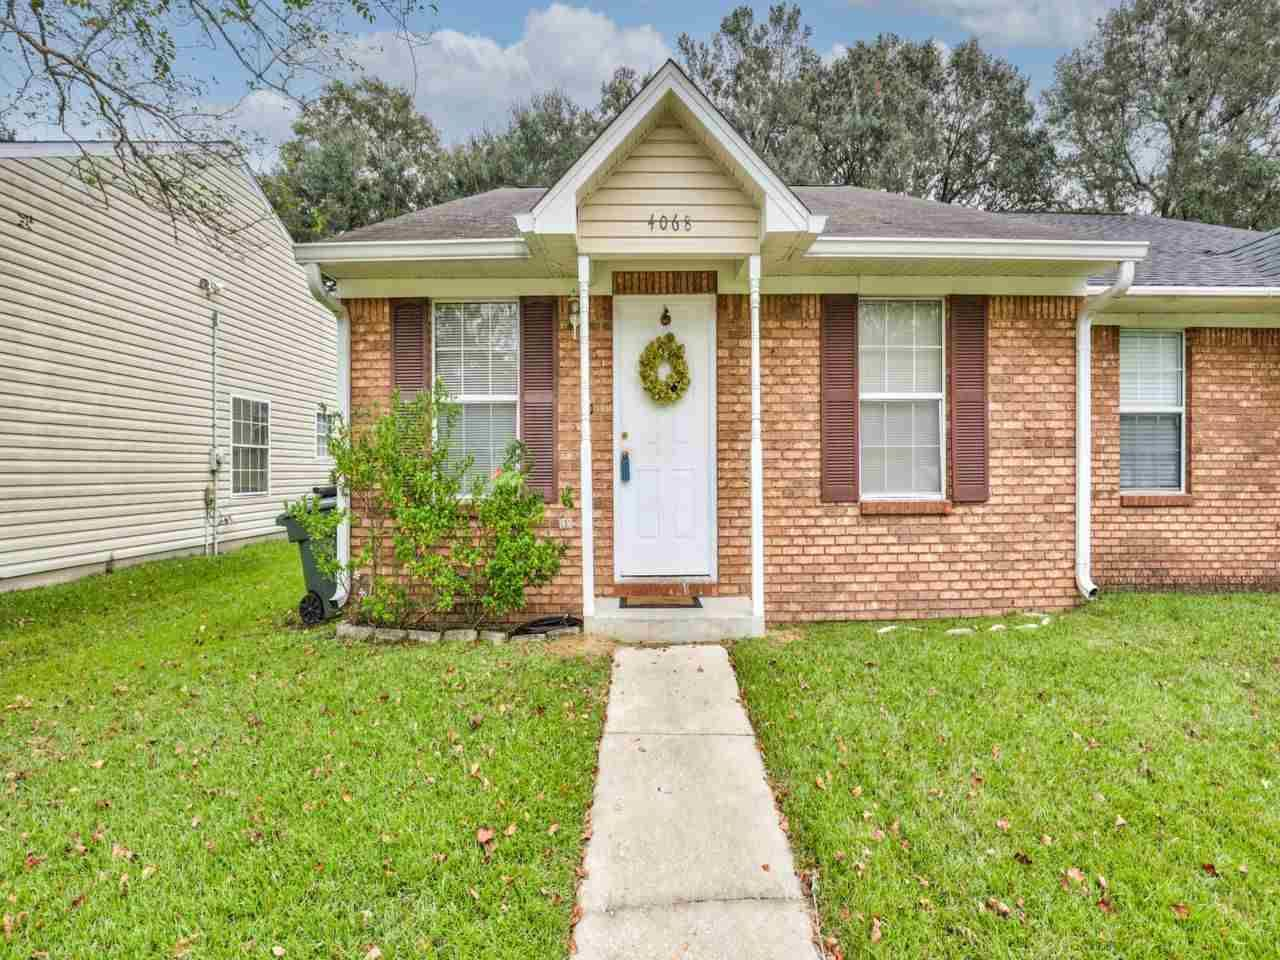 4068 Remer Court, Tallahassee, FL 32303 - MLS#: 325562